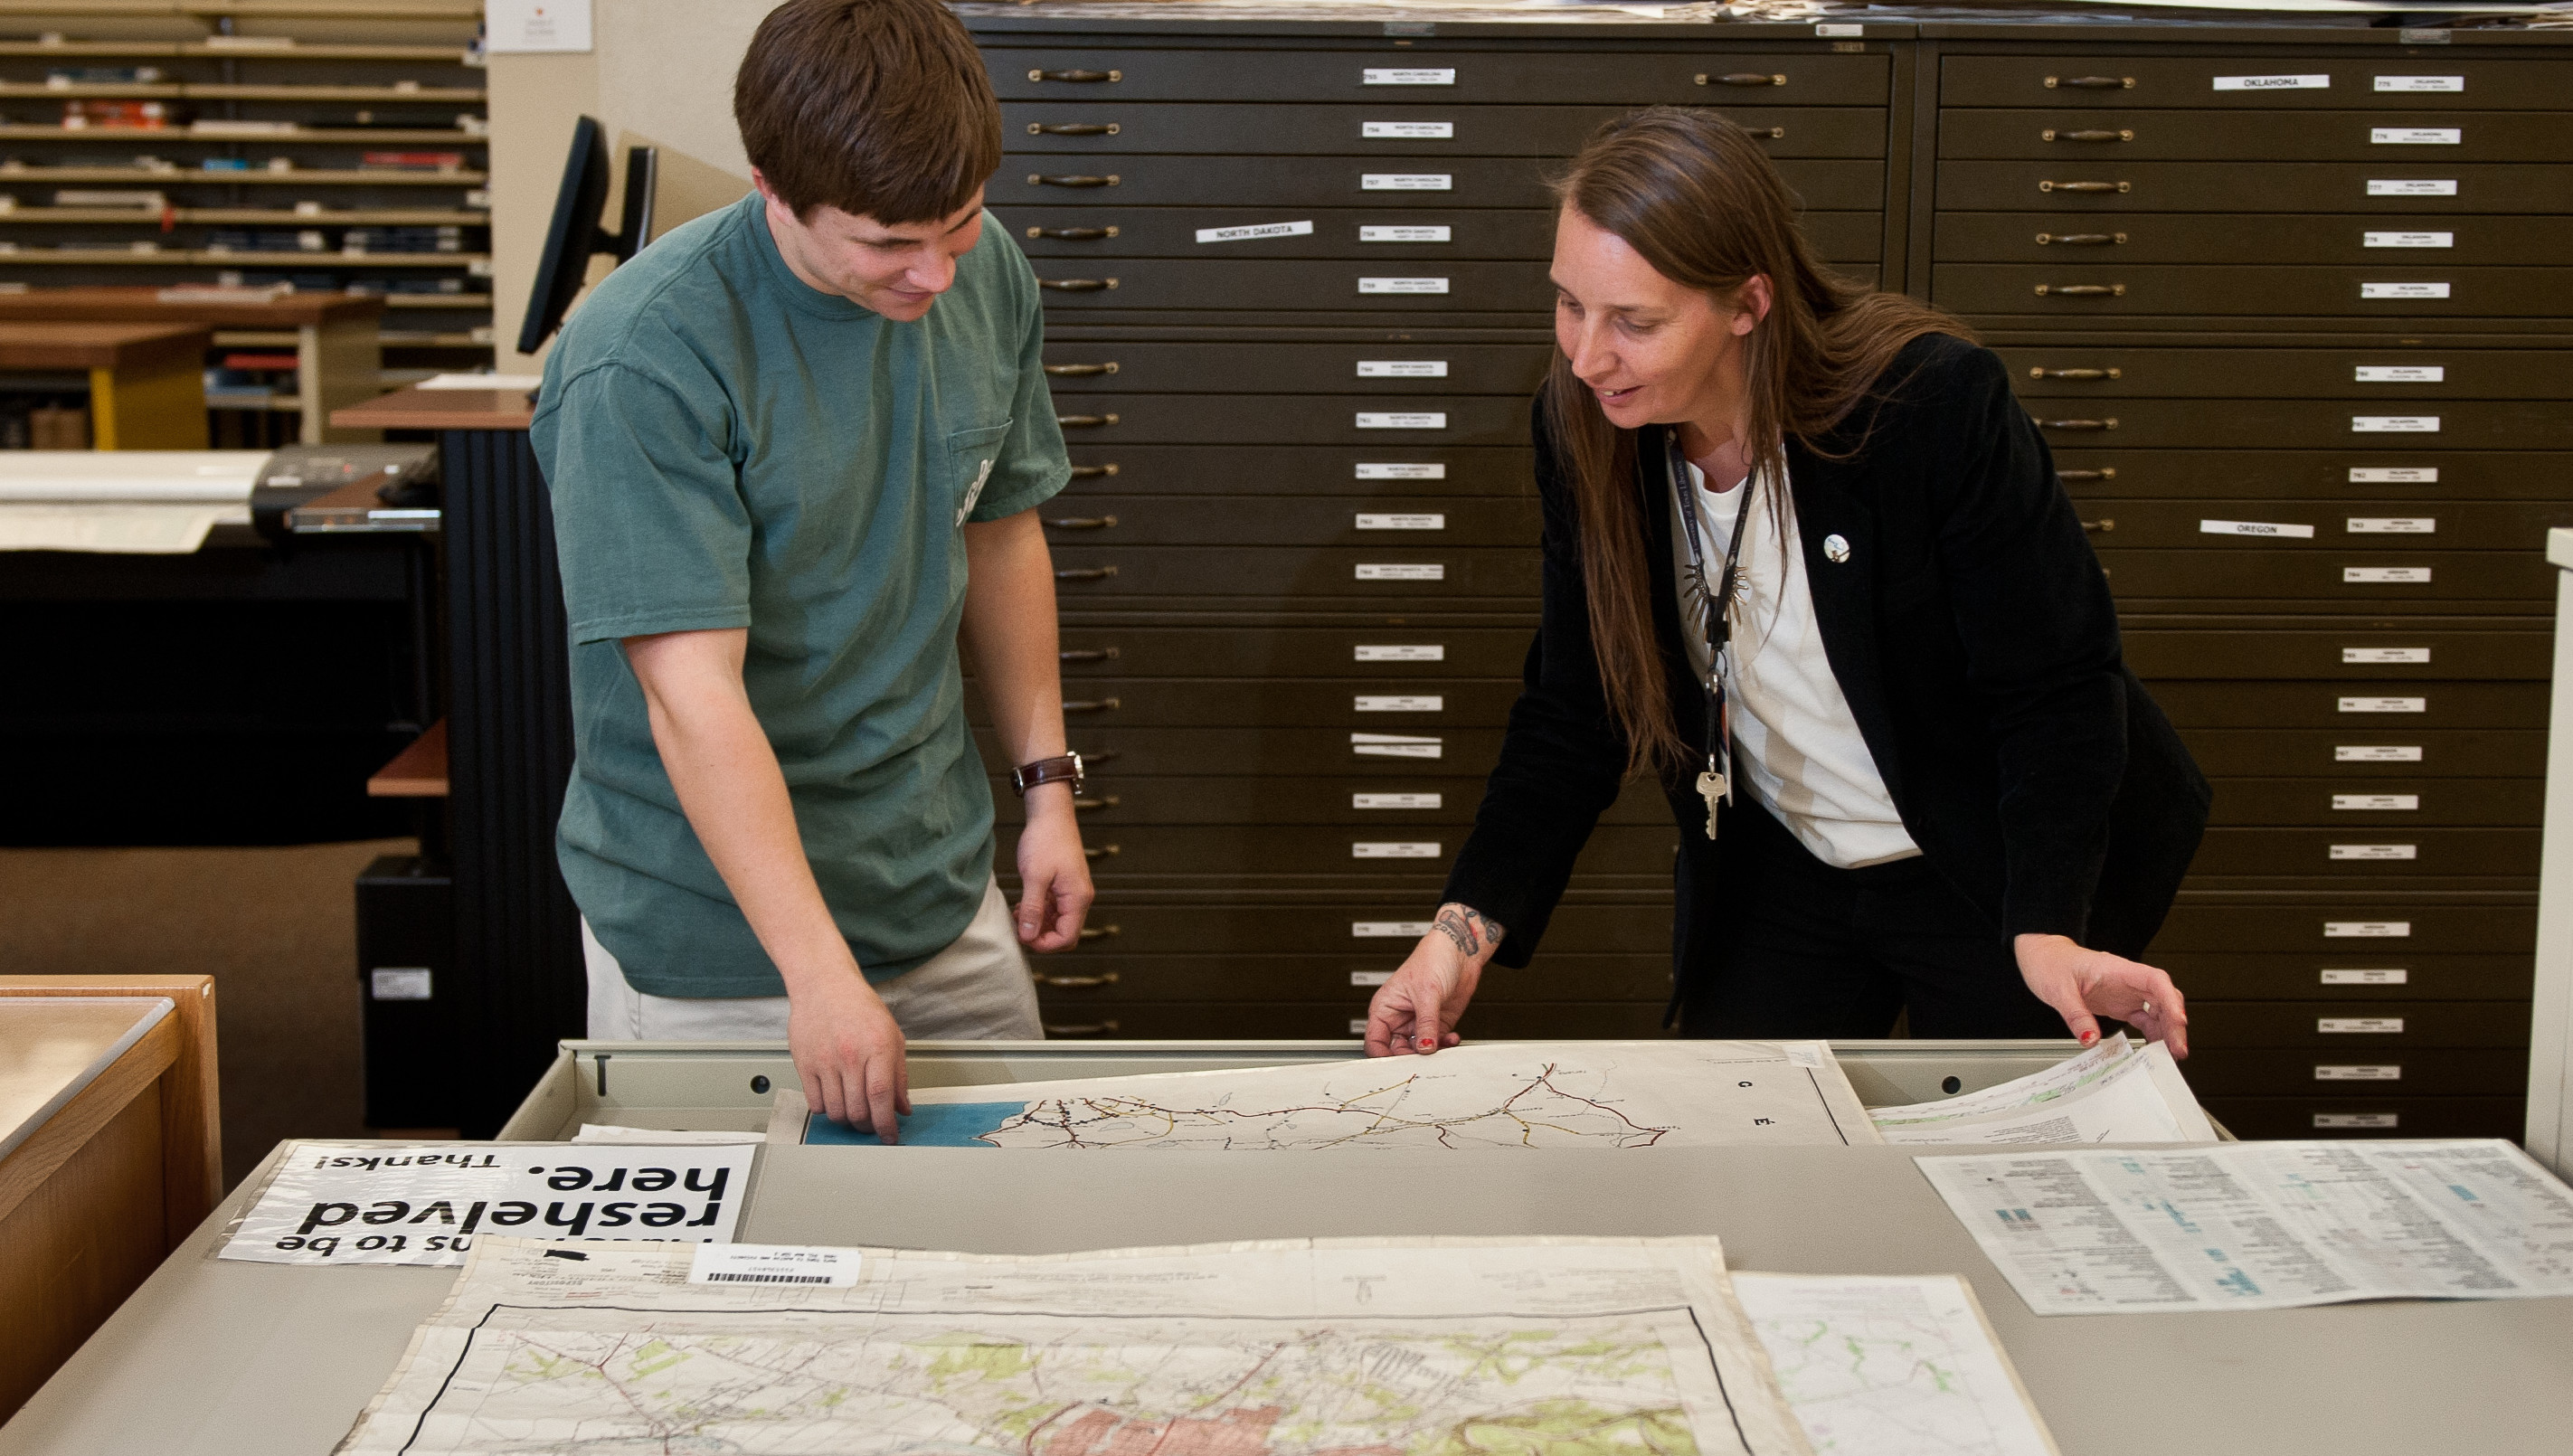 Katherine Strickland, the UT Libraries' Maps Coordinator, helping a student